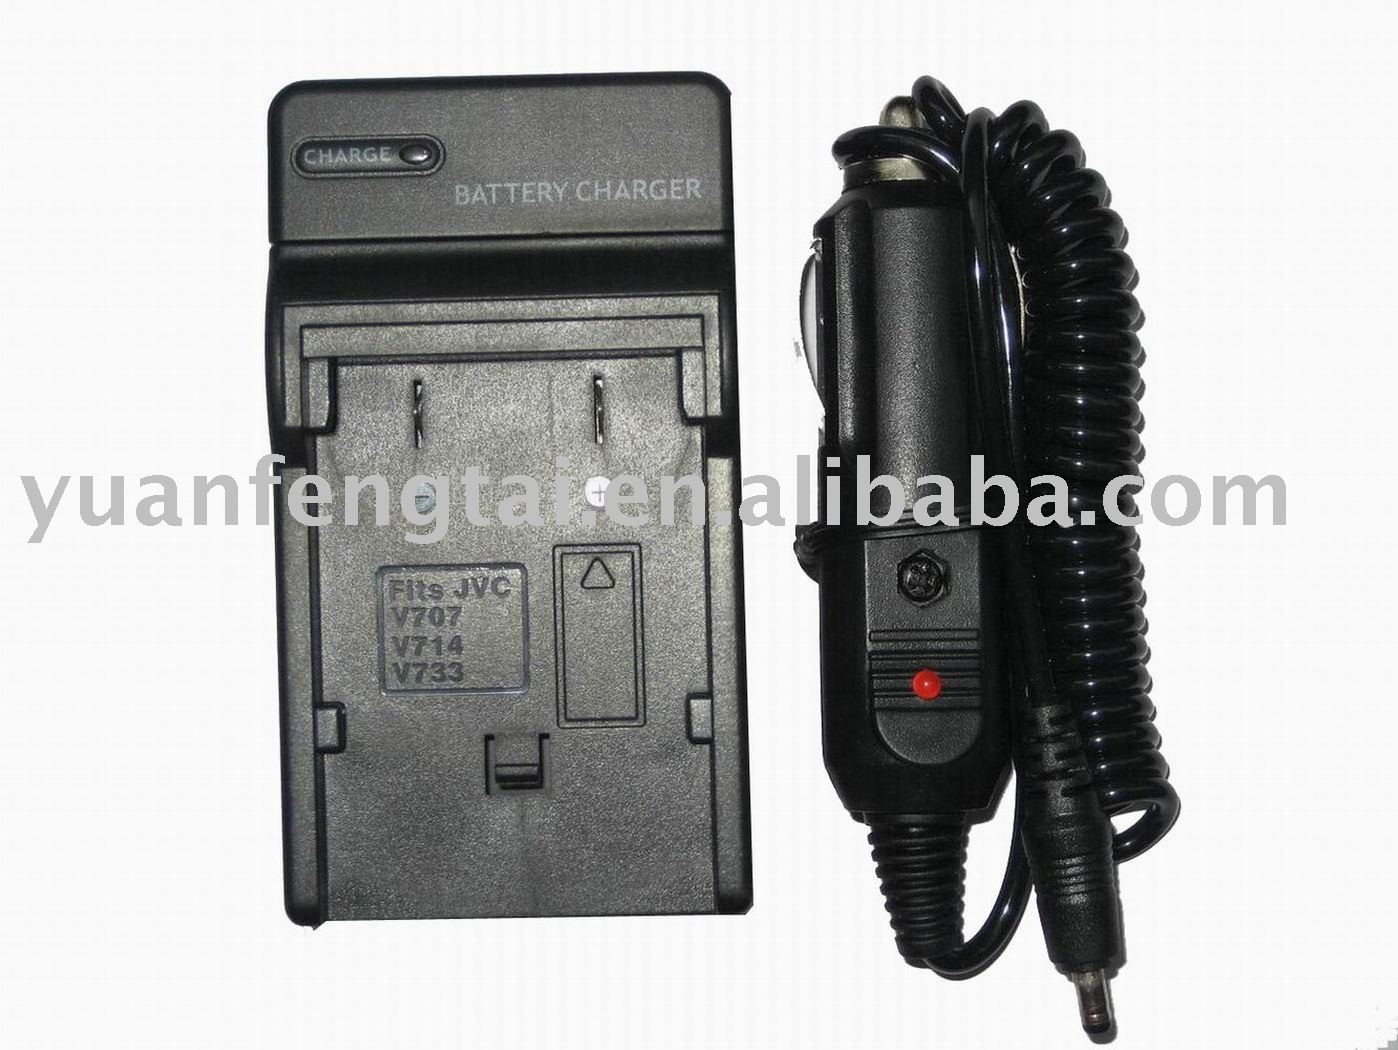 BN-VF707 Camcorder Charger Camcorder Battery Charger for JVC BN-VF707